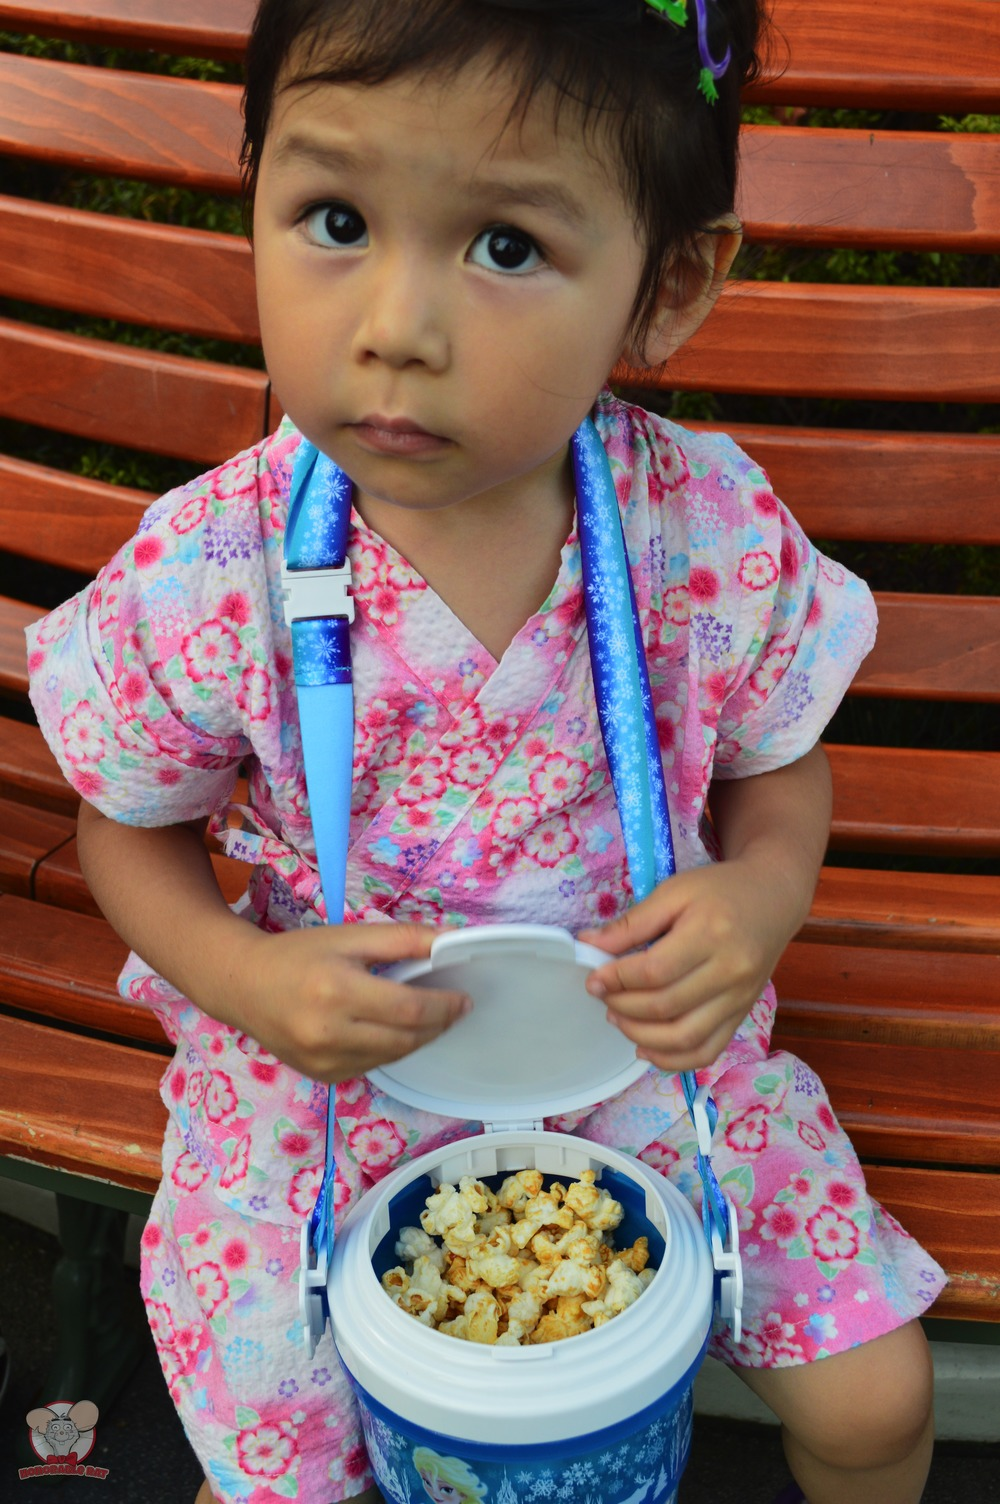 Little Mahina opening the popcorn bucket